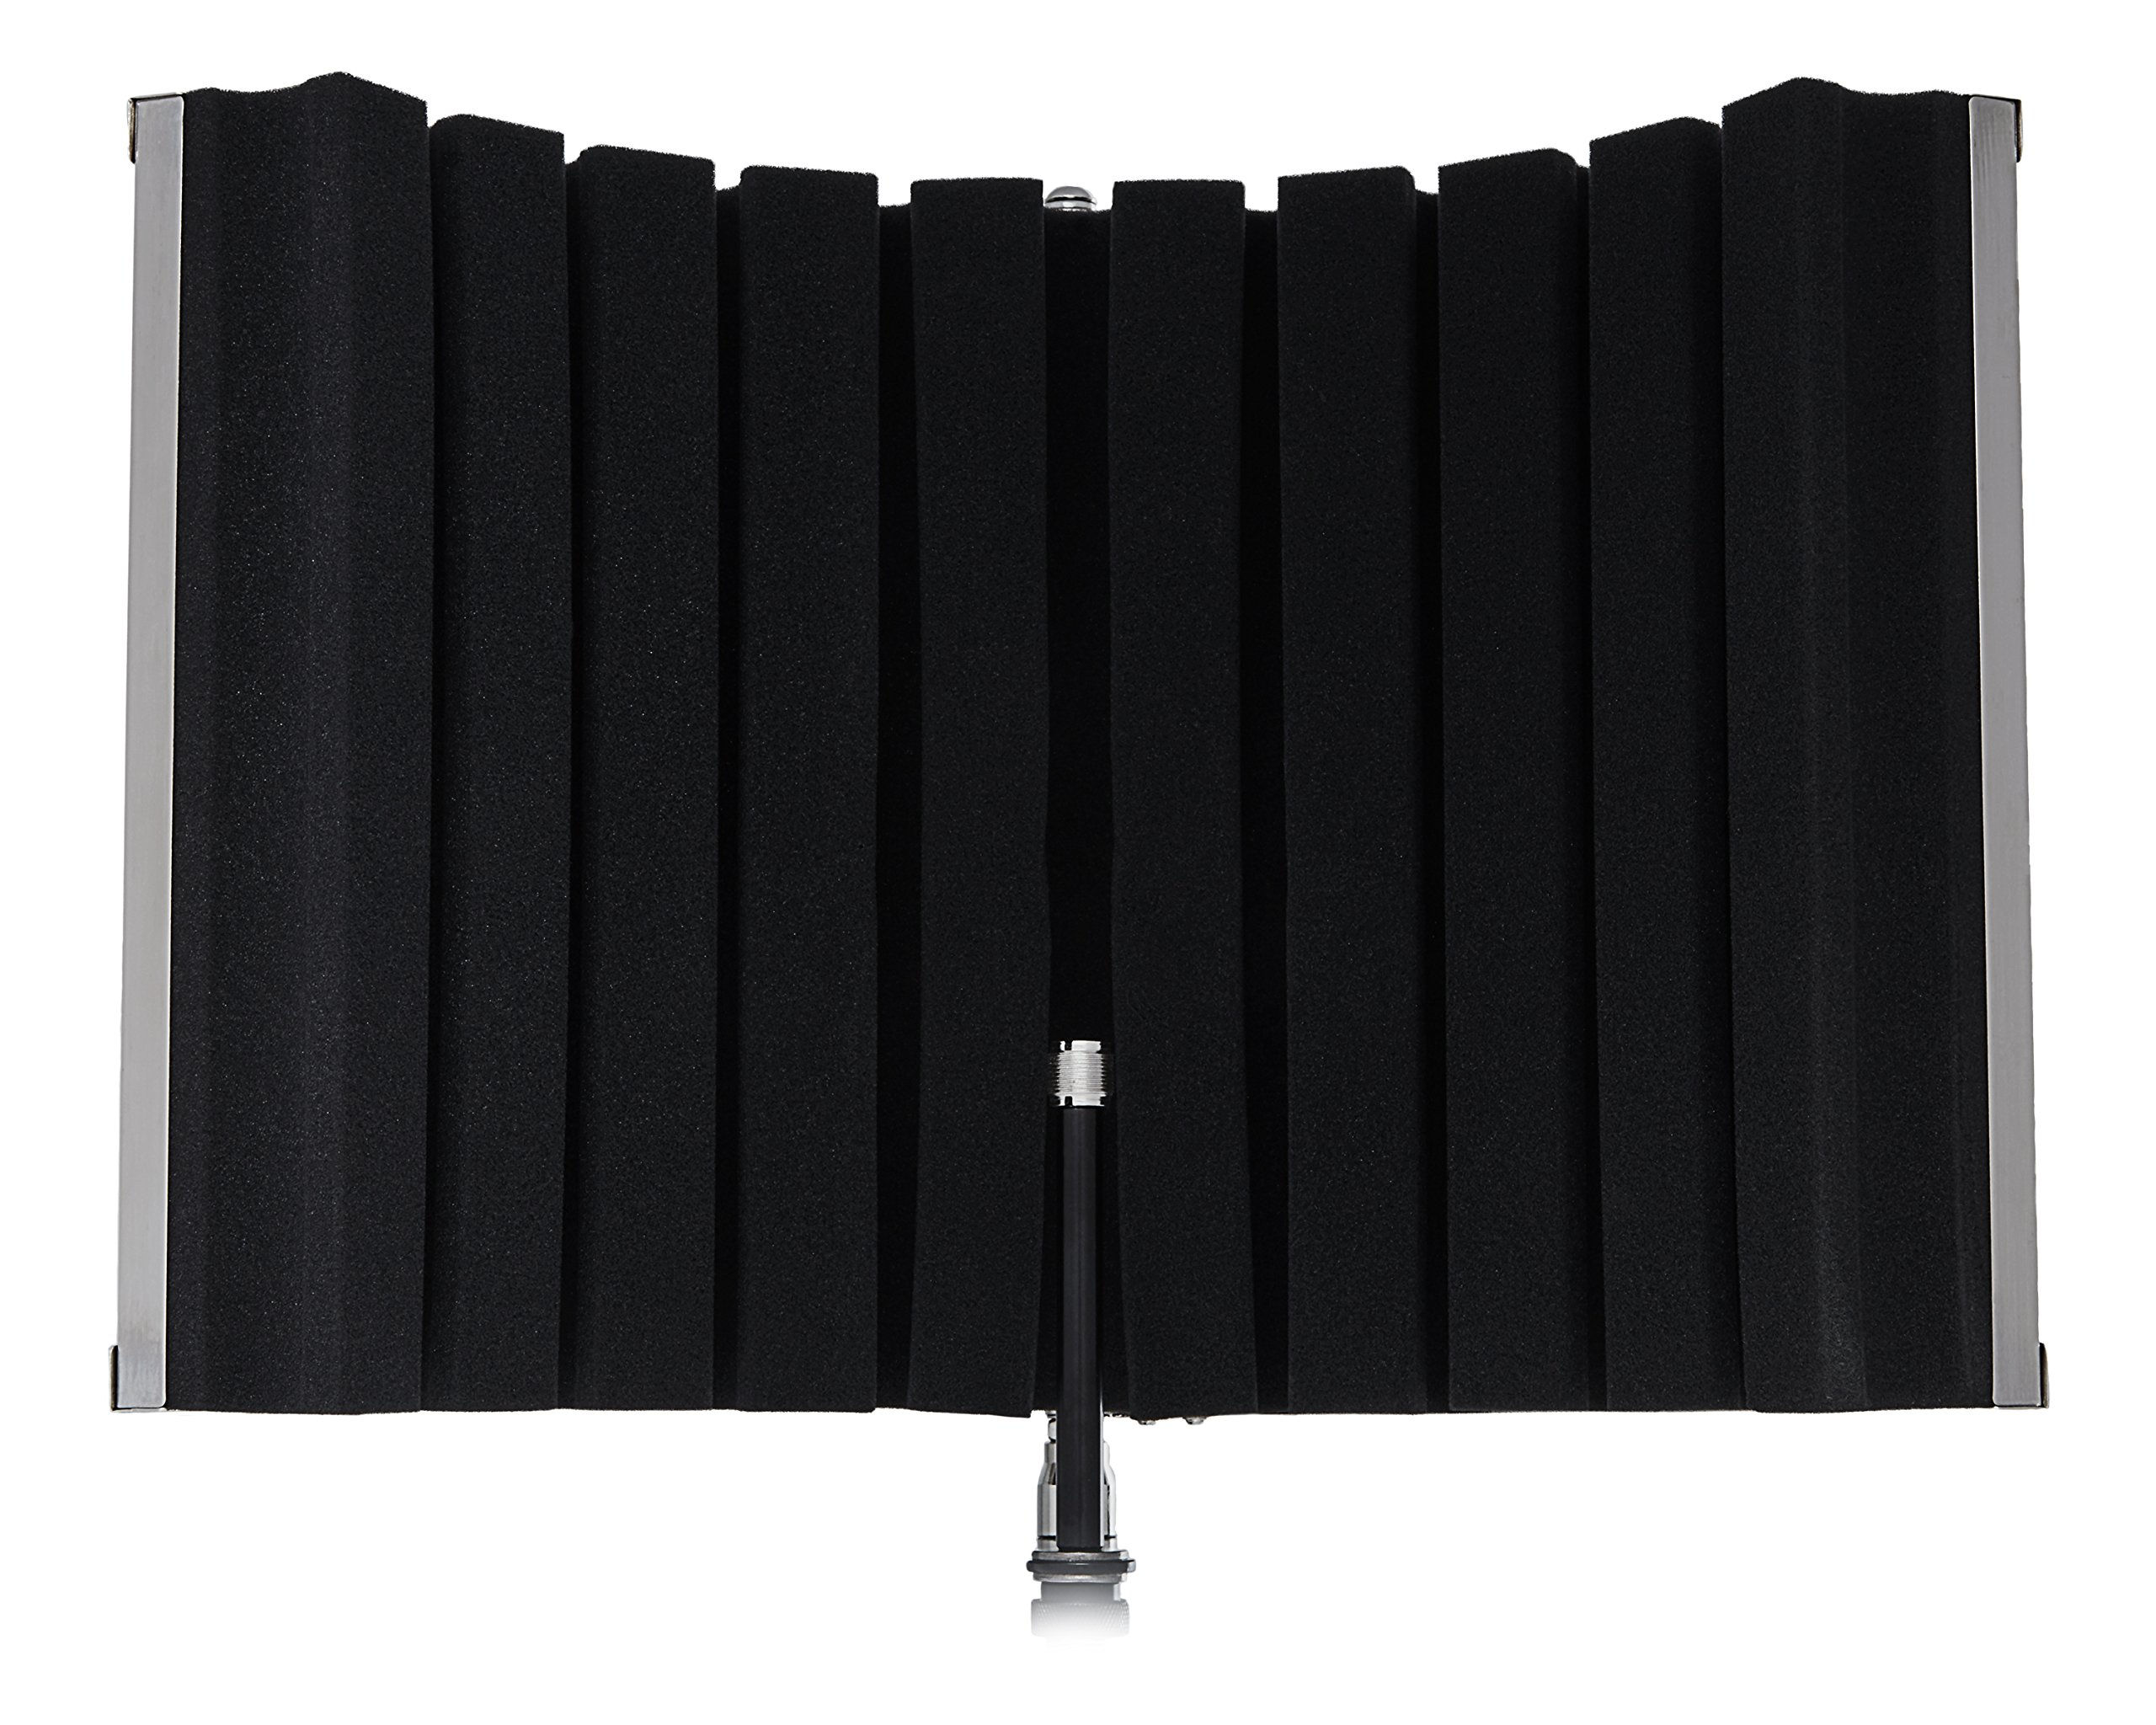 Marantz Professional Sound Shield Compact   Portable Professional Vocal Reflection Filter Featuring High Density Acoustic Foam by Marantz Professional